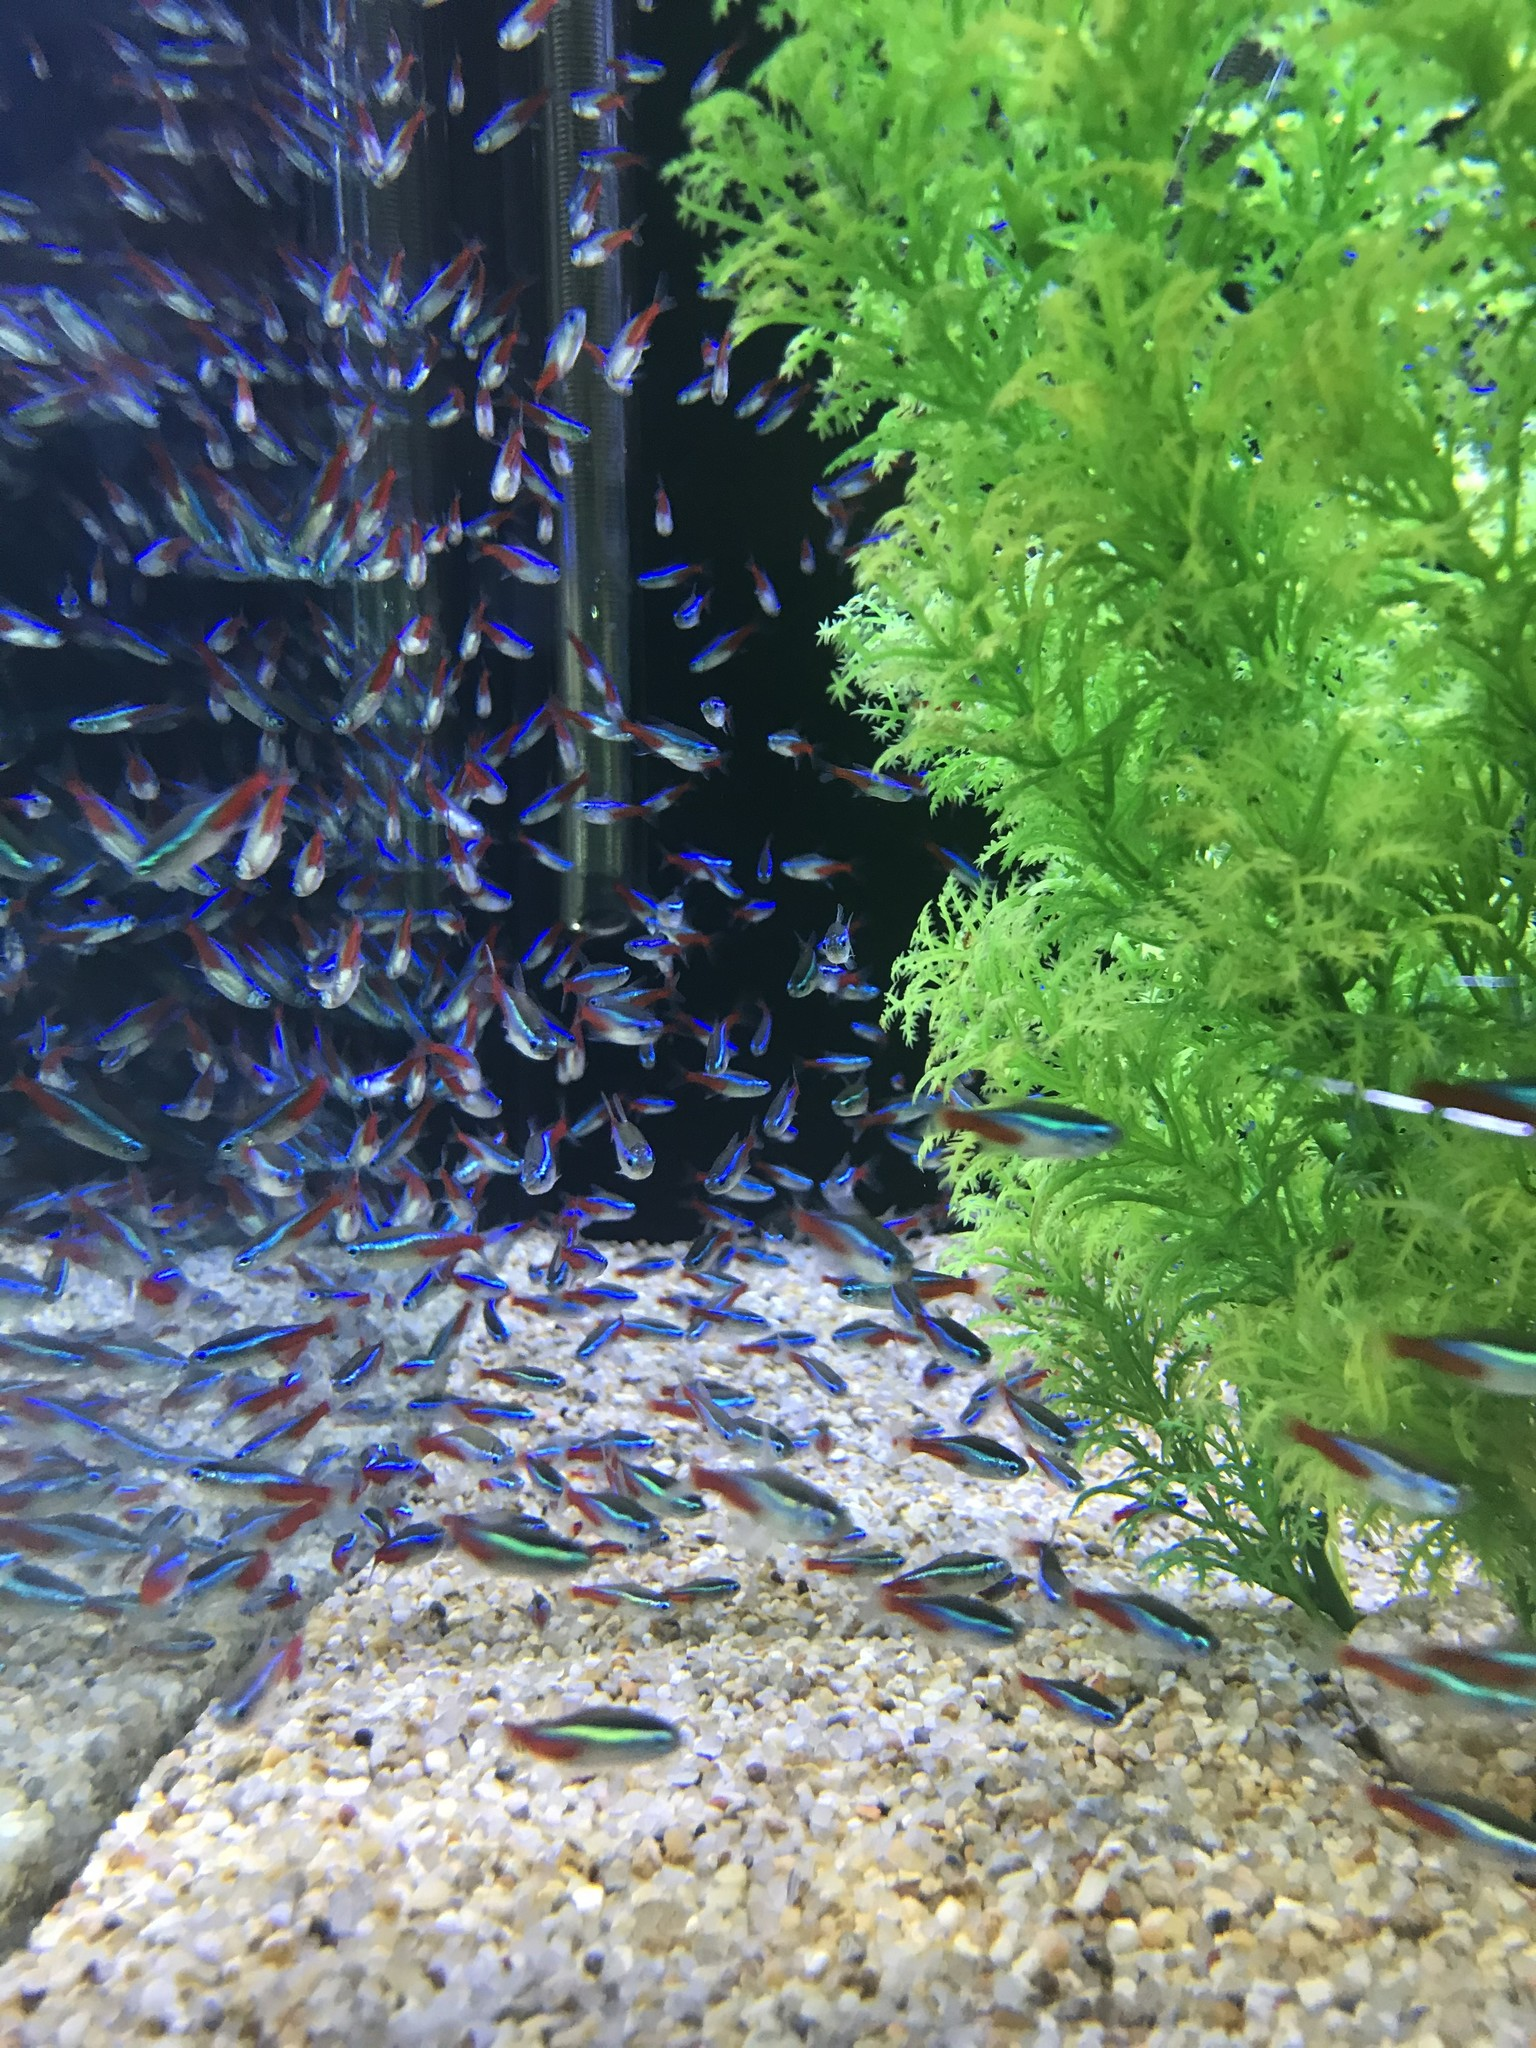 Freshwater, Saltwater and Live Plant New Arrivals - Fish Gallery Woodlands - 4/2/21